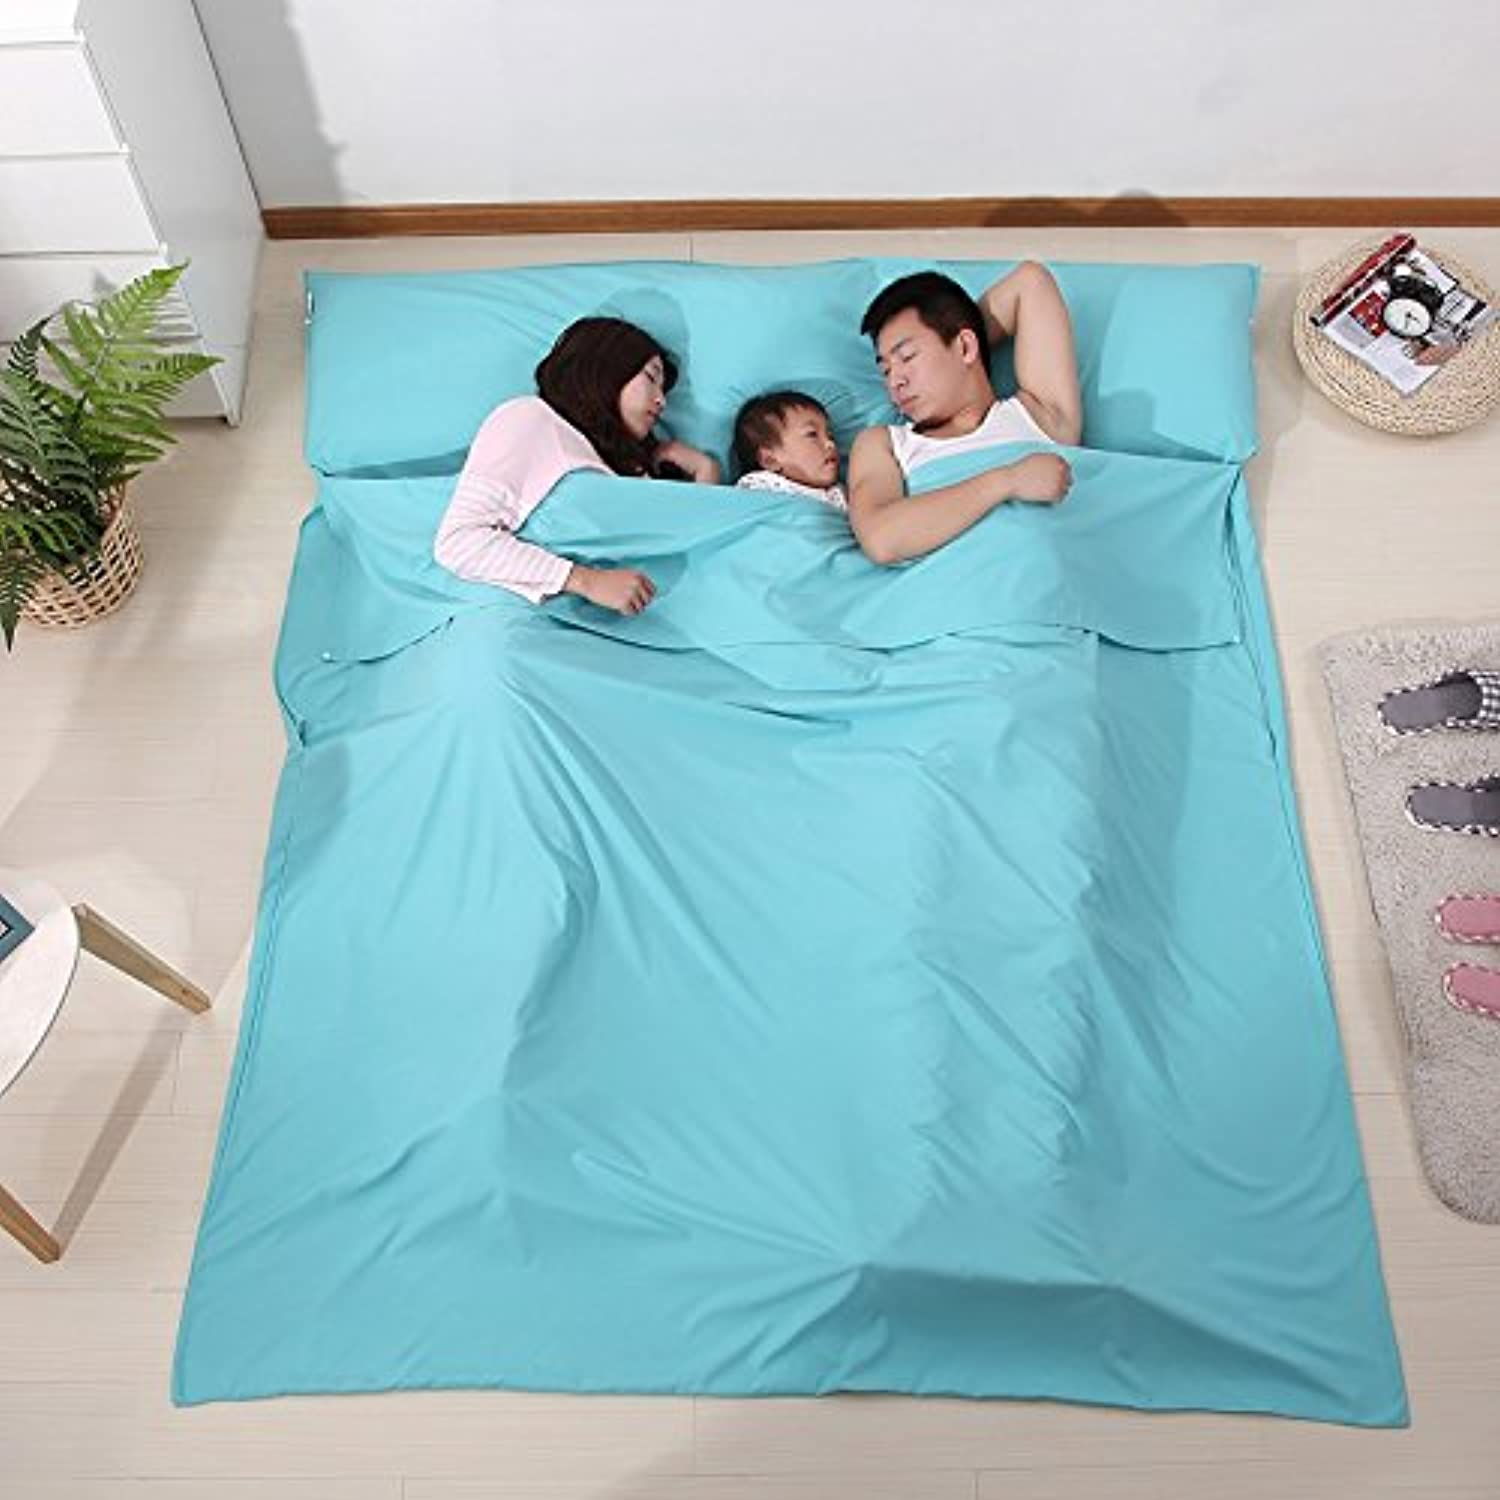 Travel Sleeping Bags Adult Double Ultrathin Portable Hotel Hotel Supplies Stained Bed Sheets Quilt Pillowcases Cotton